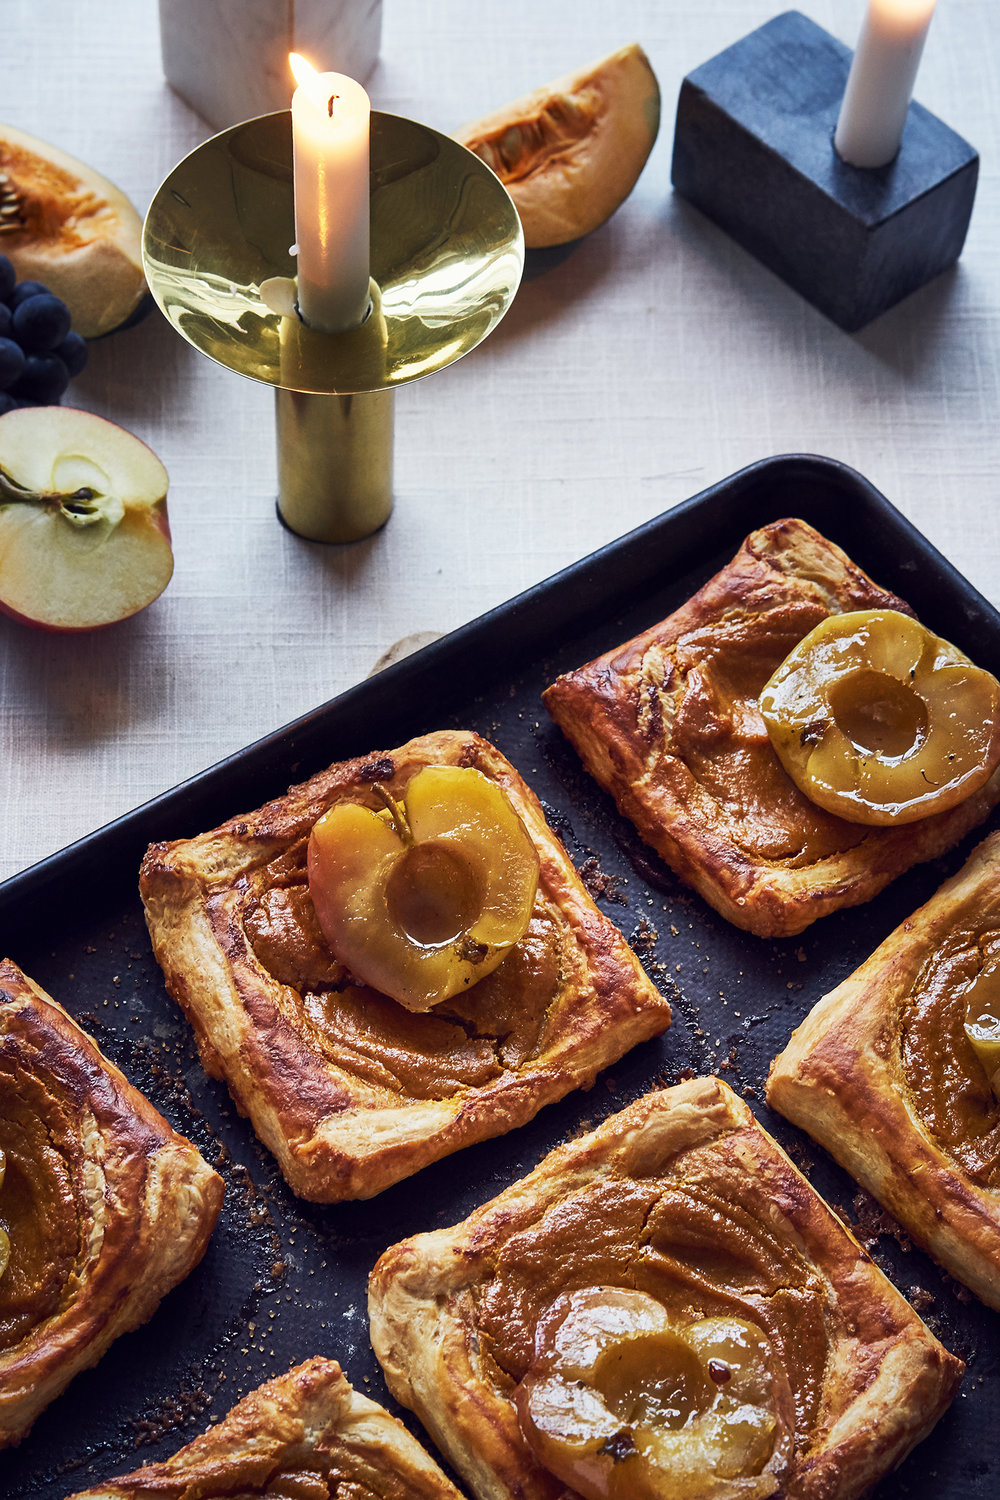 west-elm-apple-pumpkin-tart-07.jpg